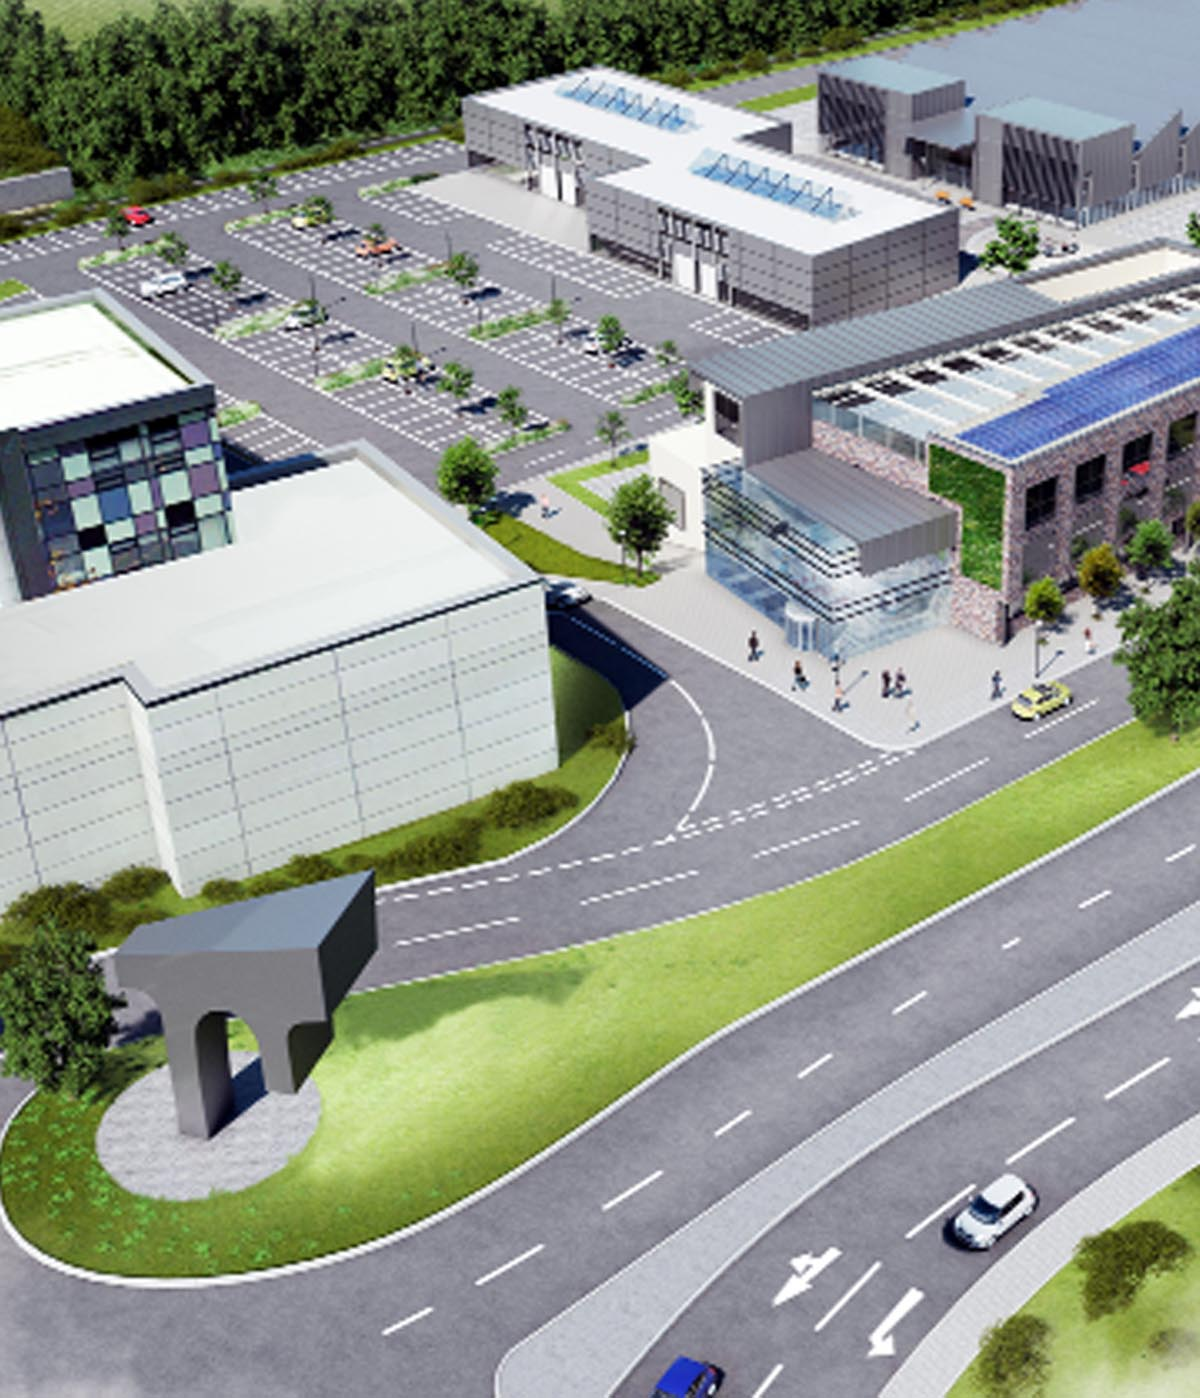 Revealed – Burnley's Knowledge Quarter that could bring 100s of jobs